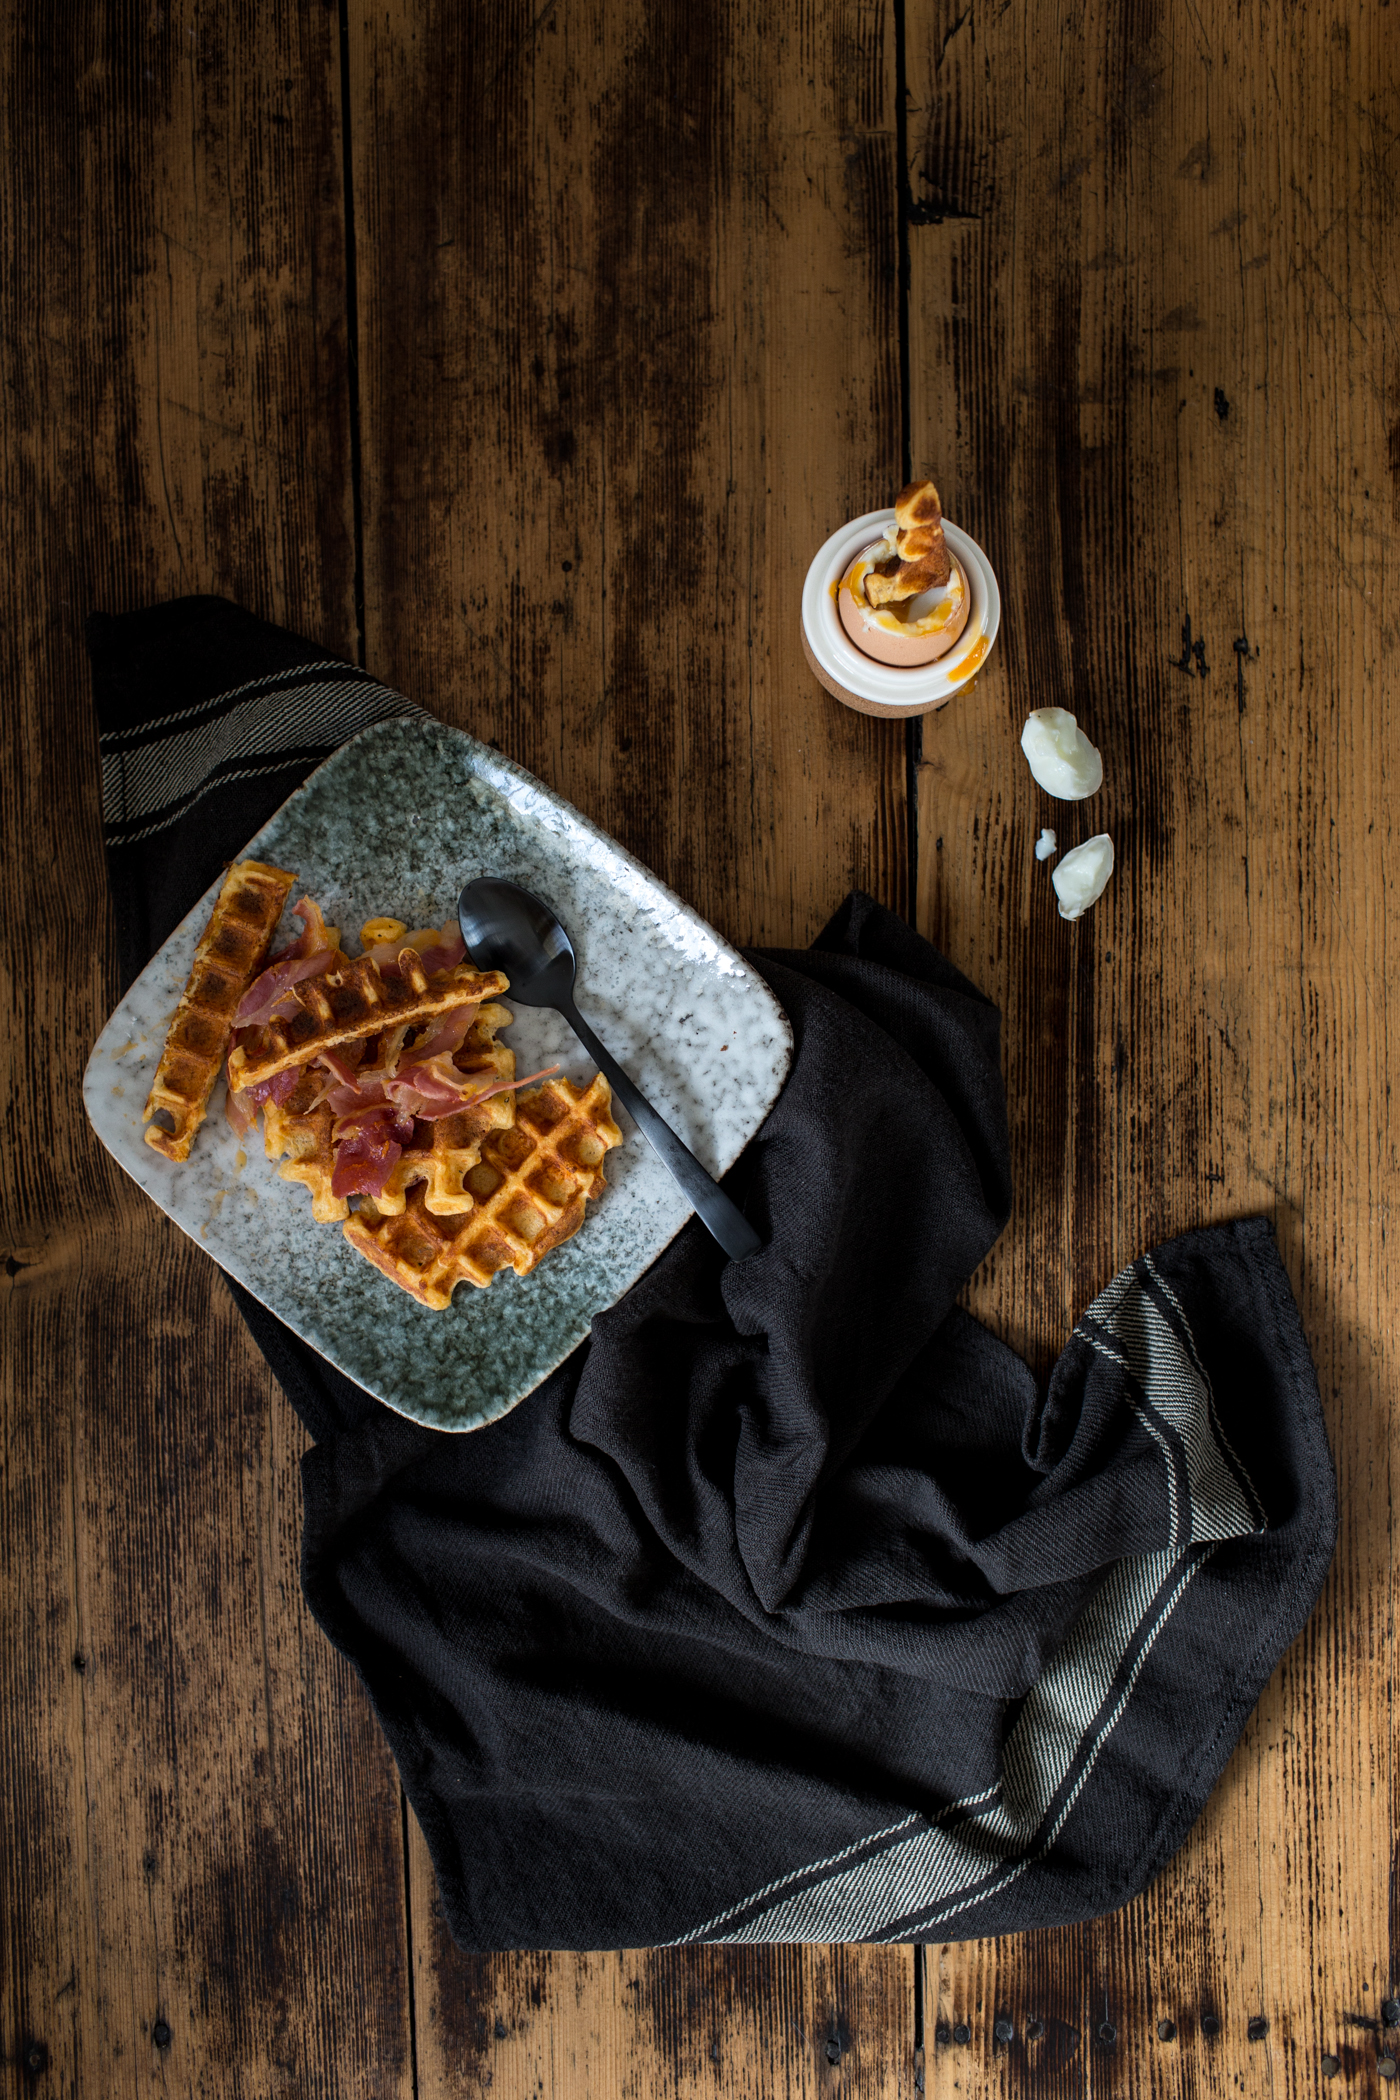 oeuf-coque-mouillettes-gaufre-patate-douce-9